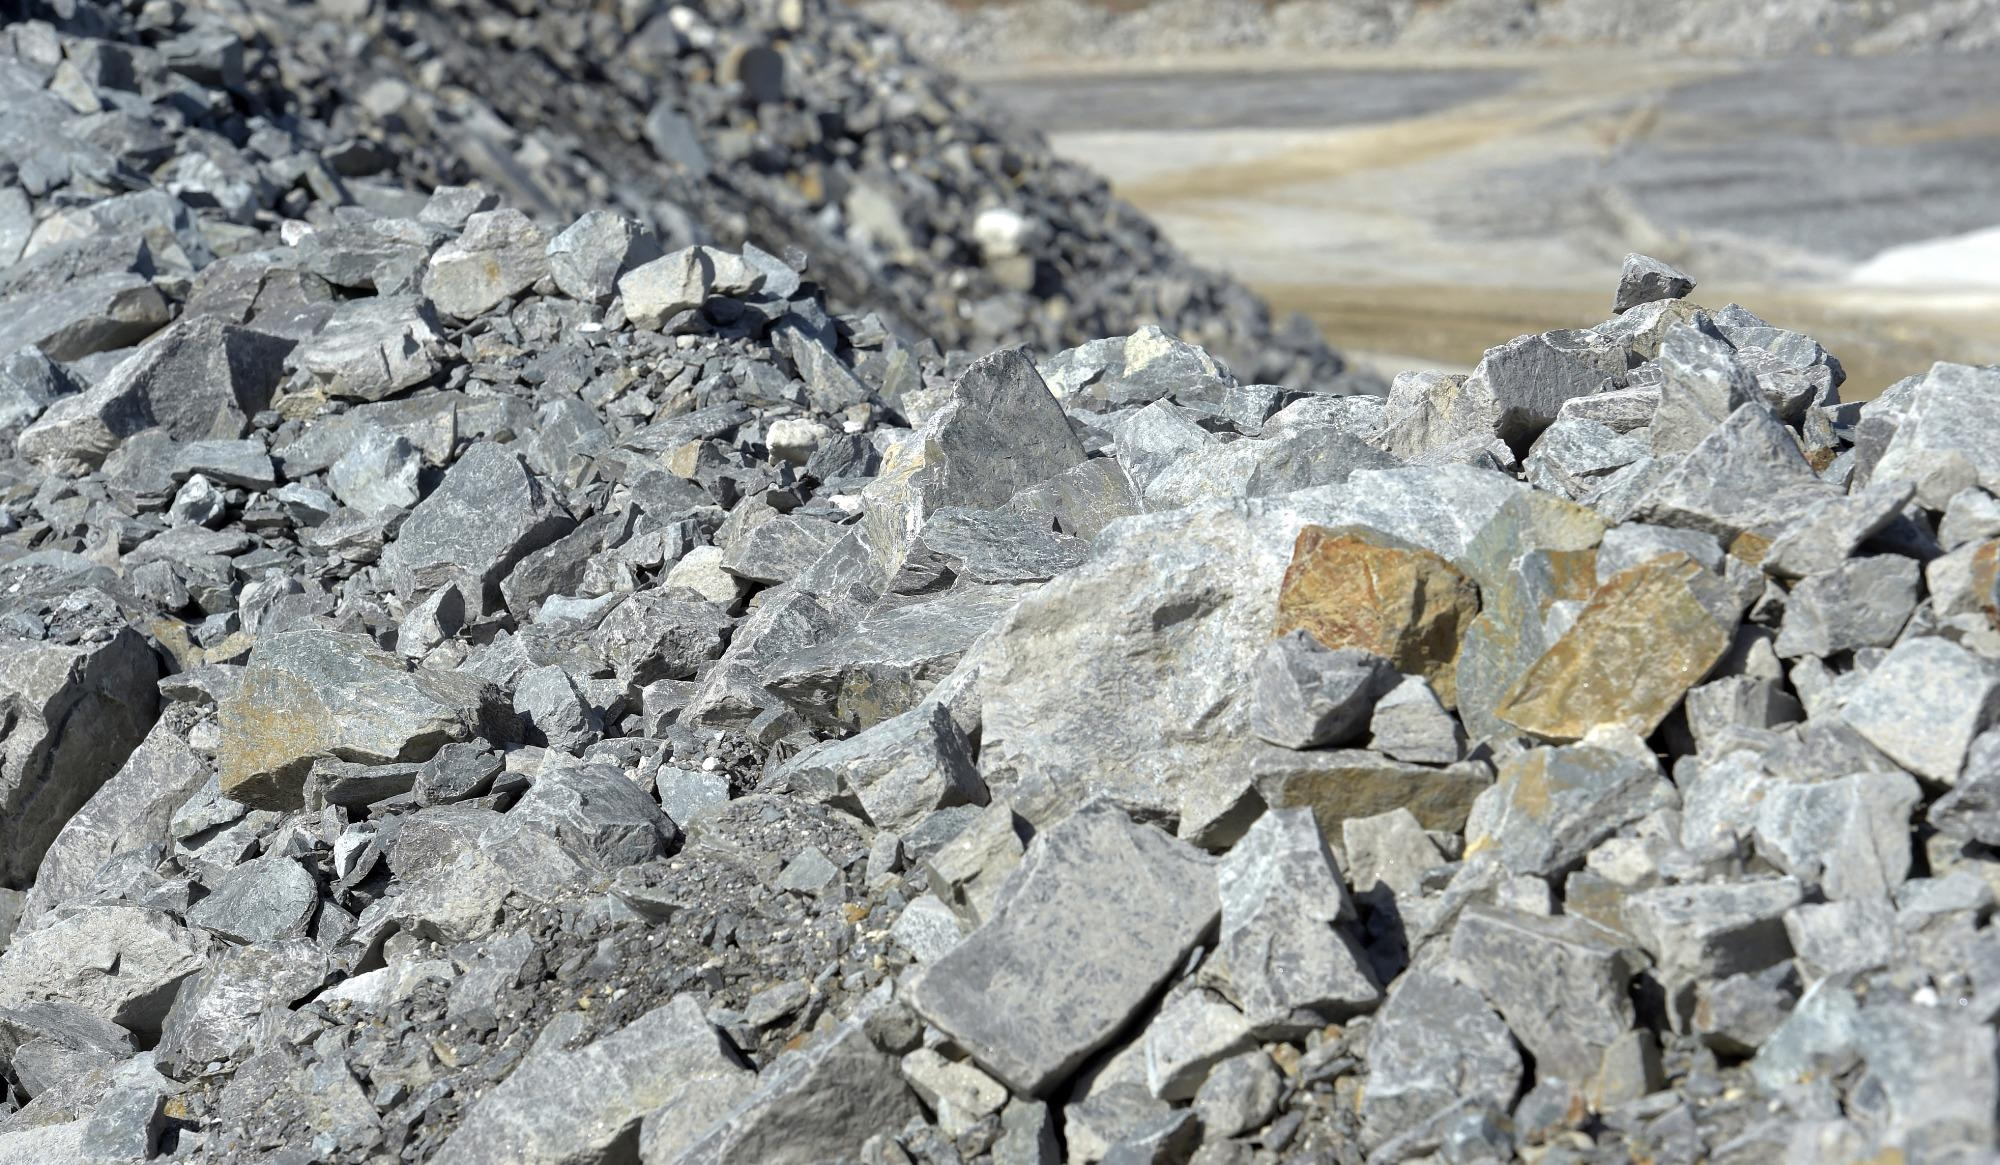 Alpha Lithium Announces Drilling Completion for Tolillar Lithium Project